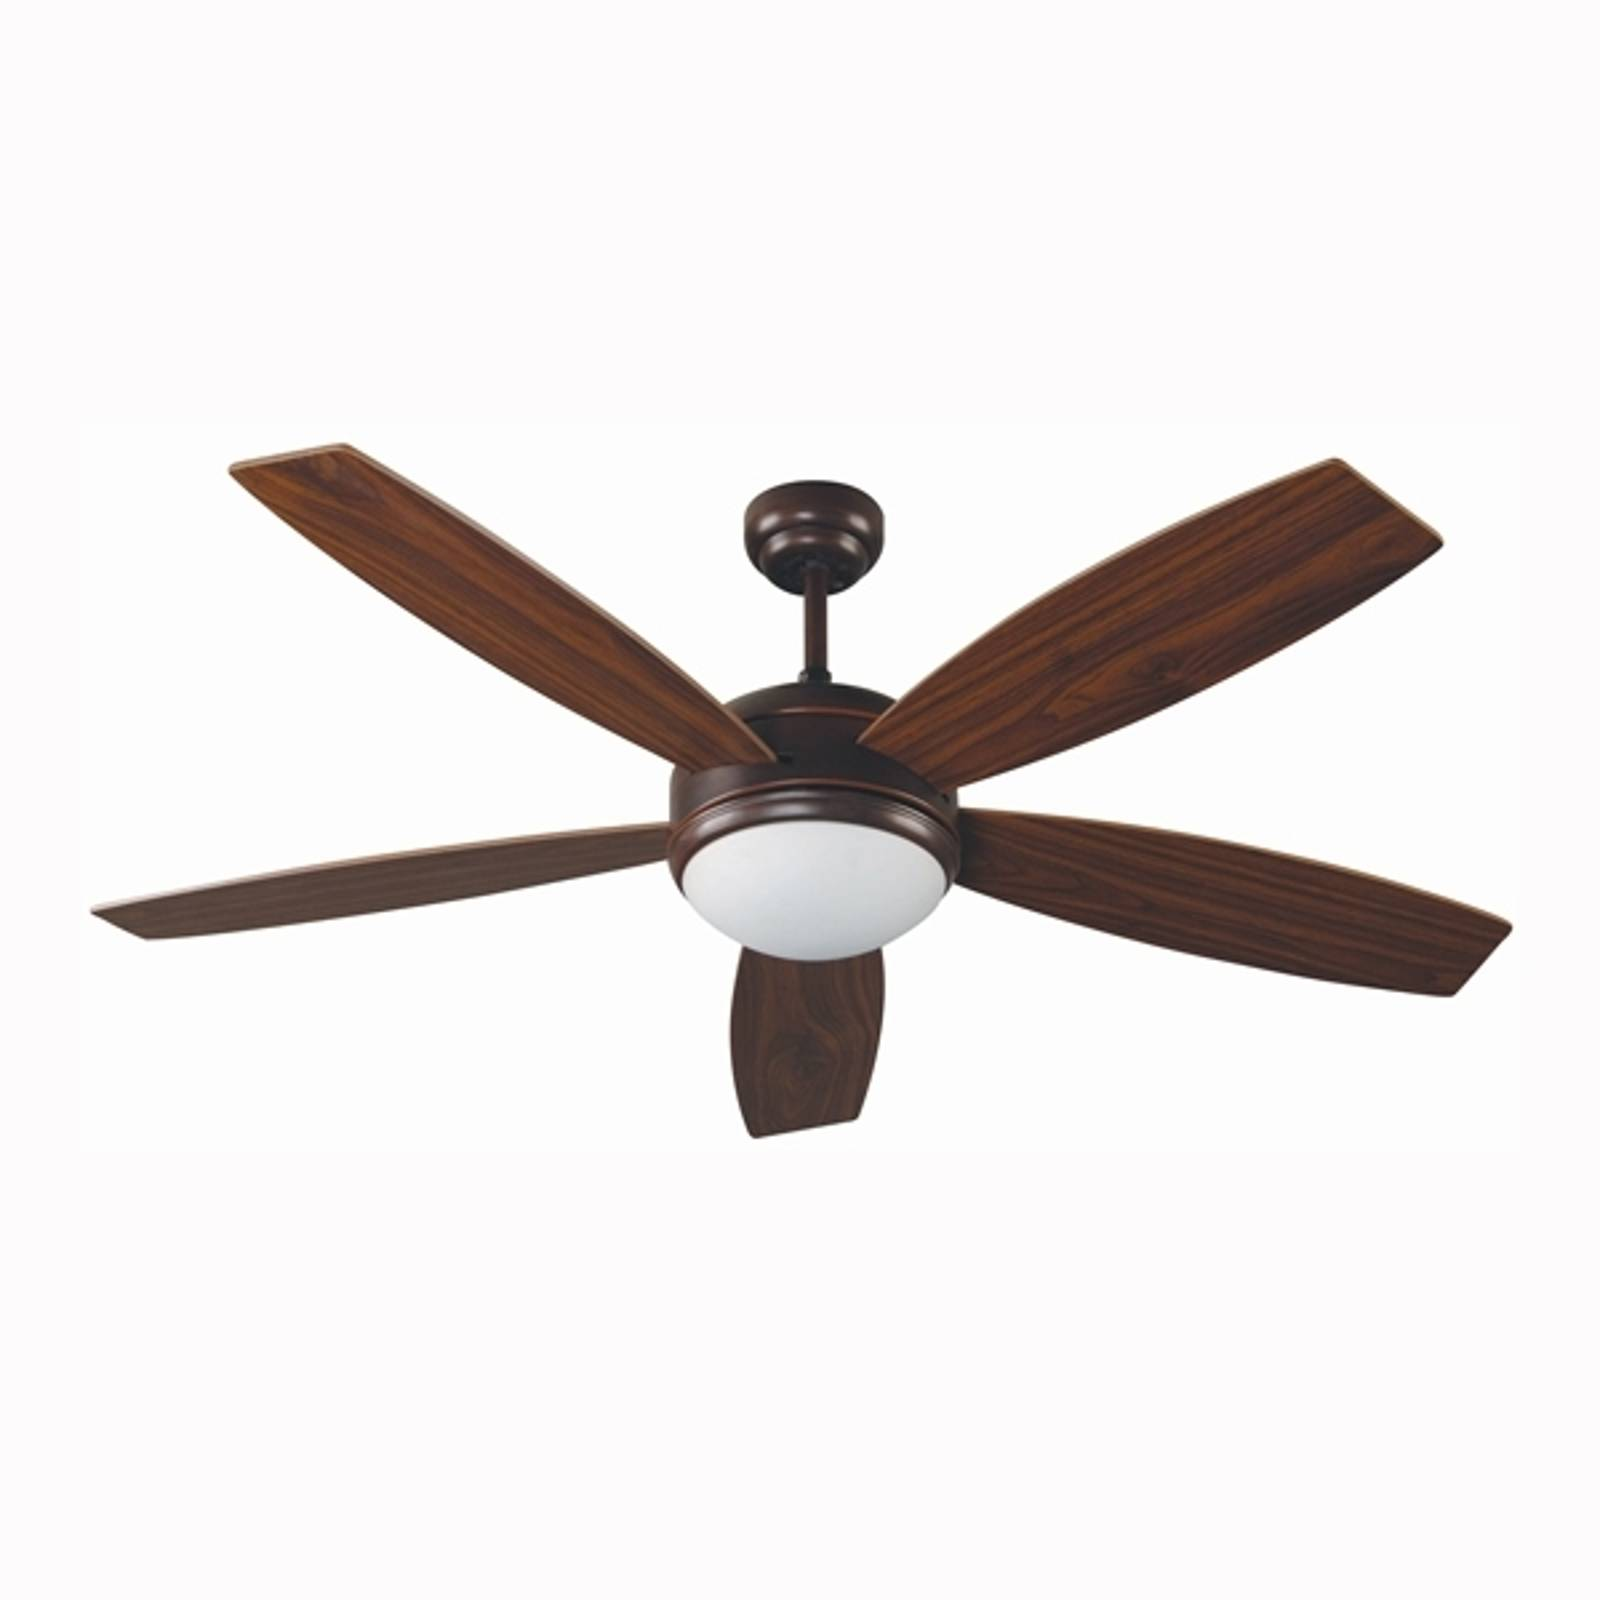 VANU Large Ceiling Fan with Remote Control, Brown from FARO BARCELONA